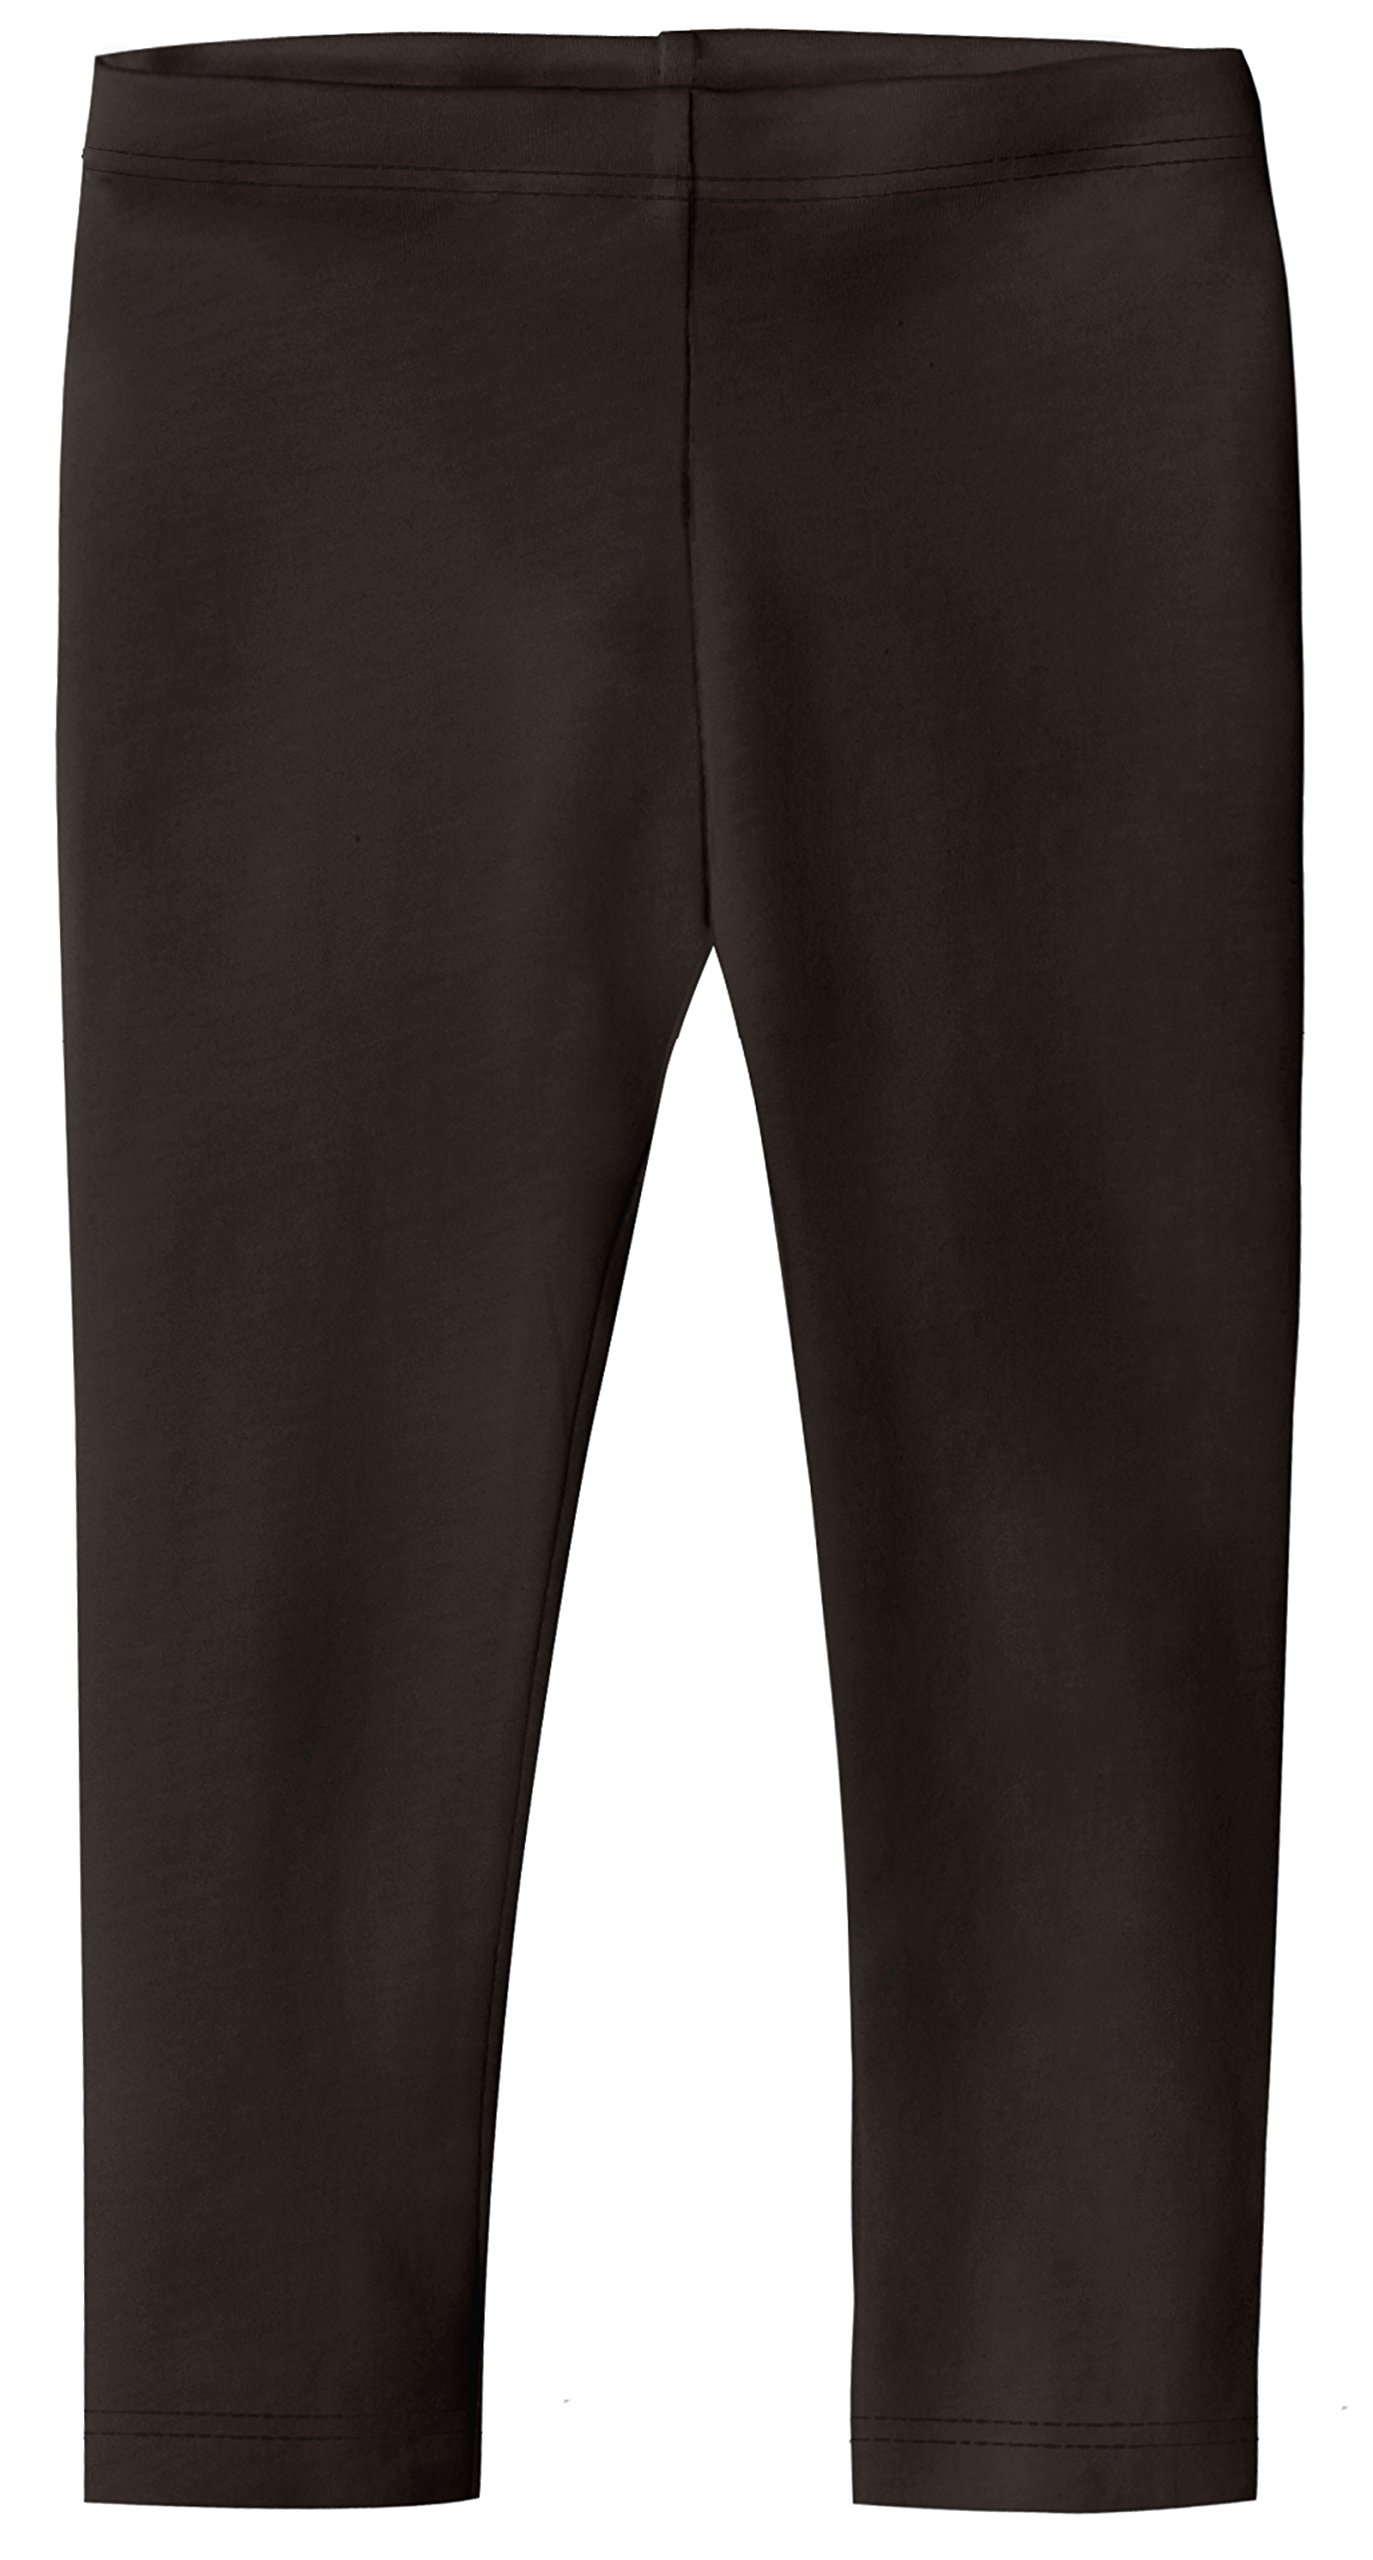 City Threads Big Girls' Cotton Cropped Capri Legging for Summer, Play and School, Chocolate, 2T